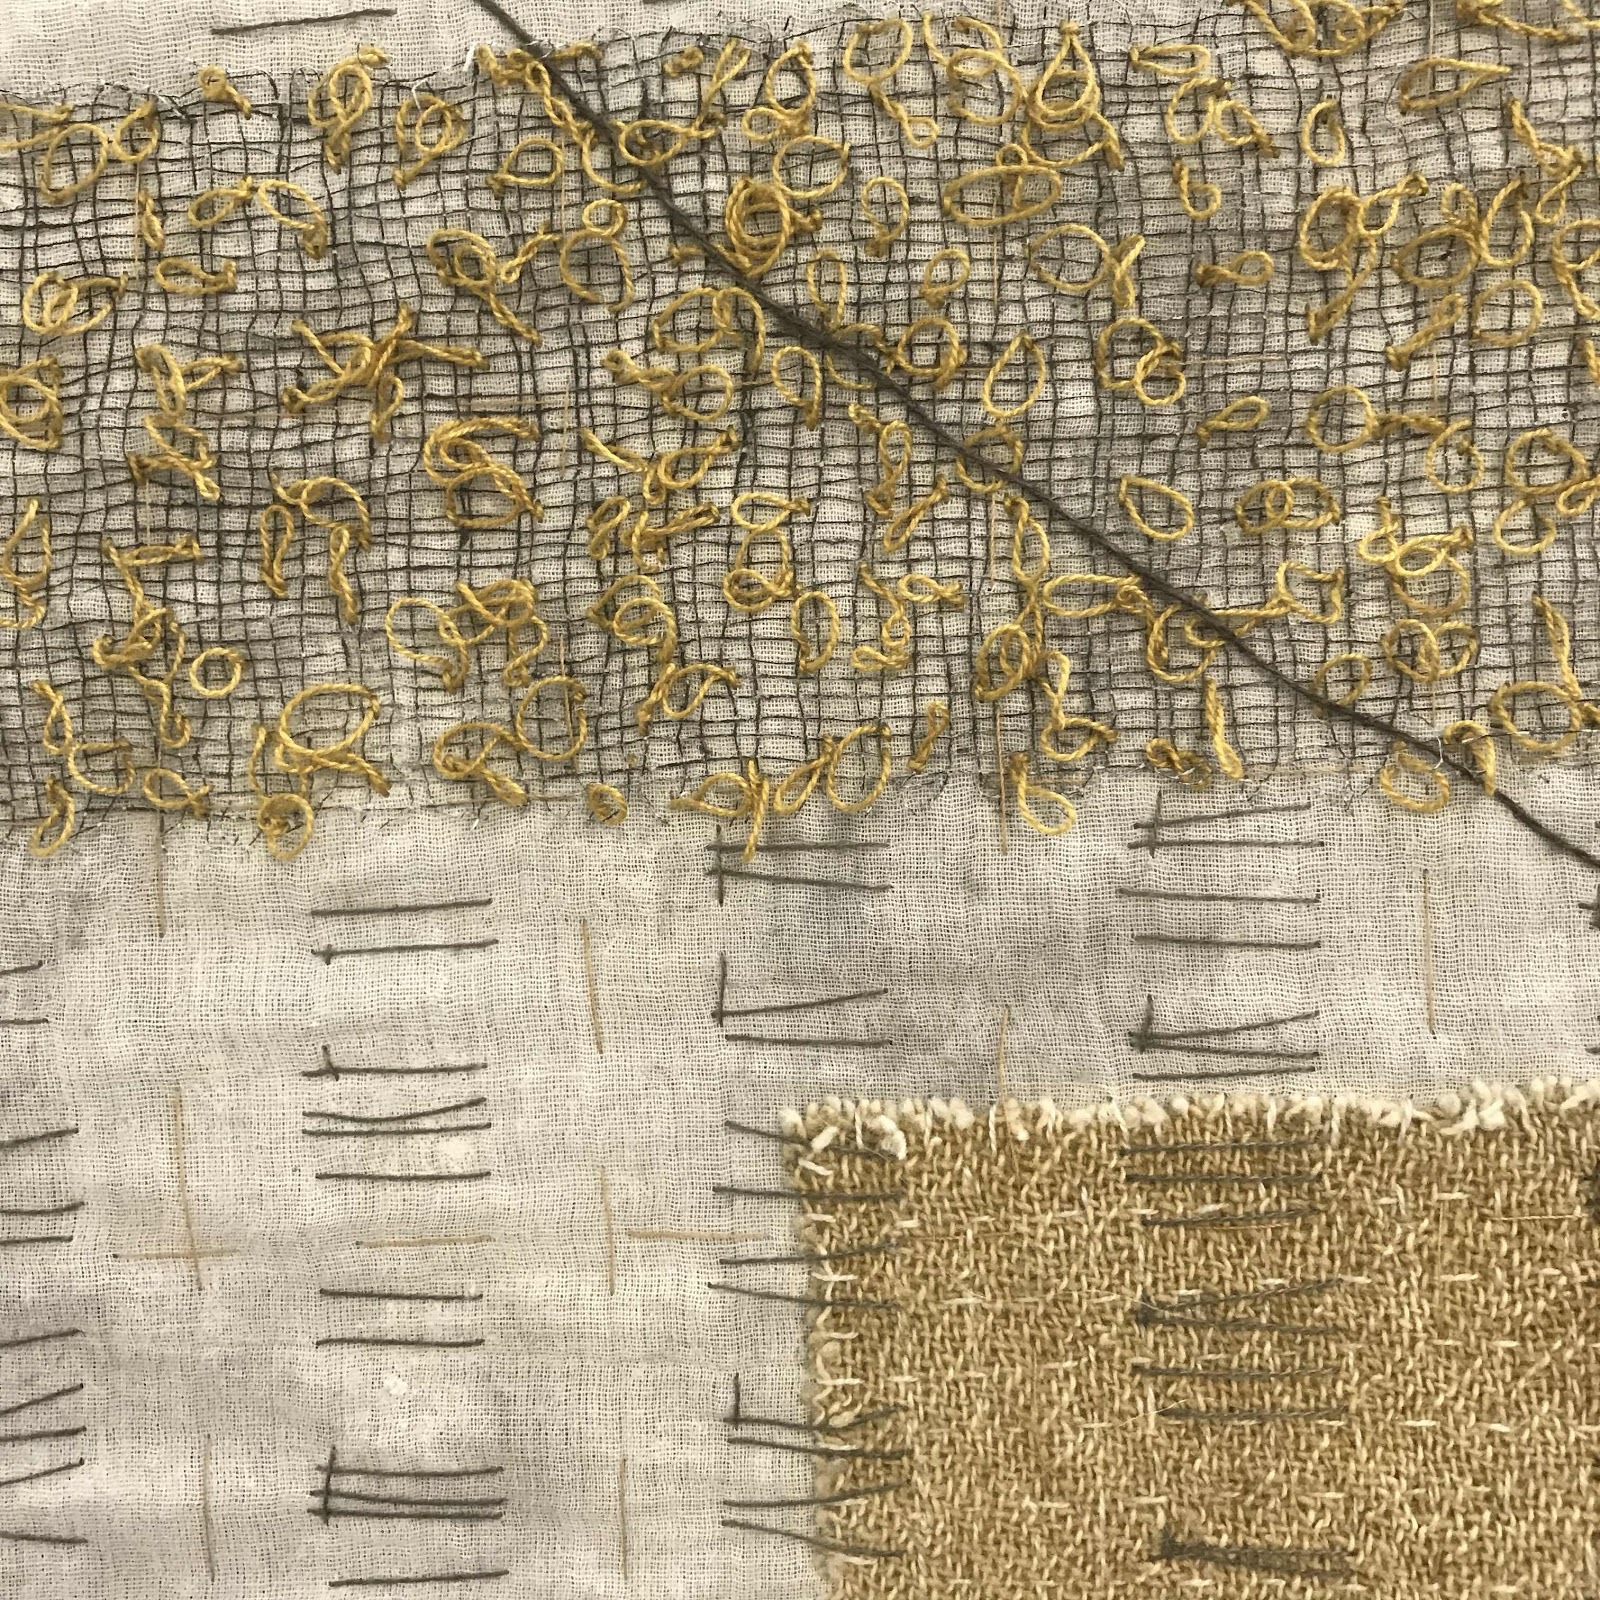 Detail of stitching